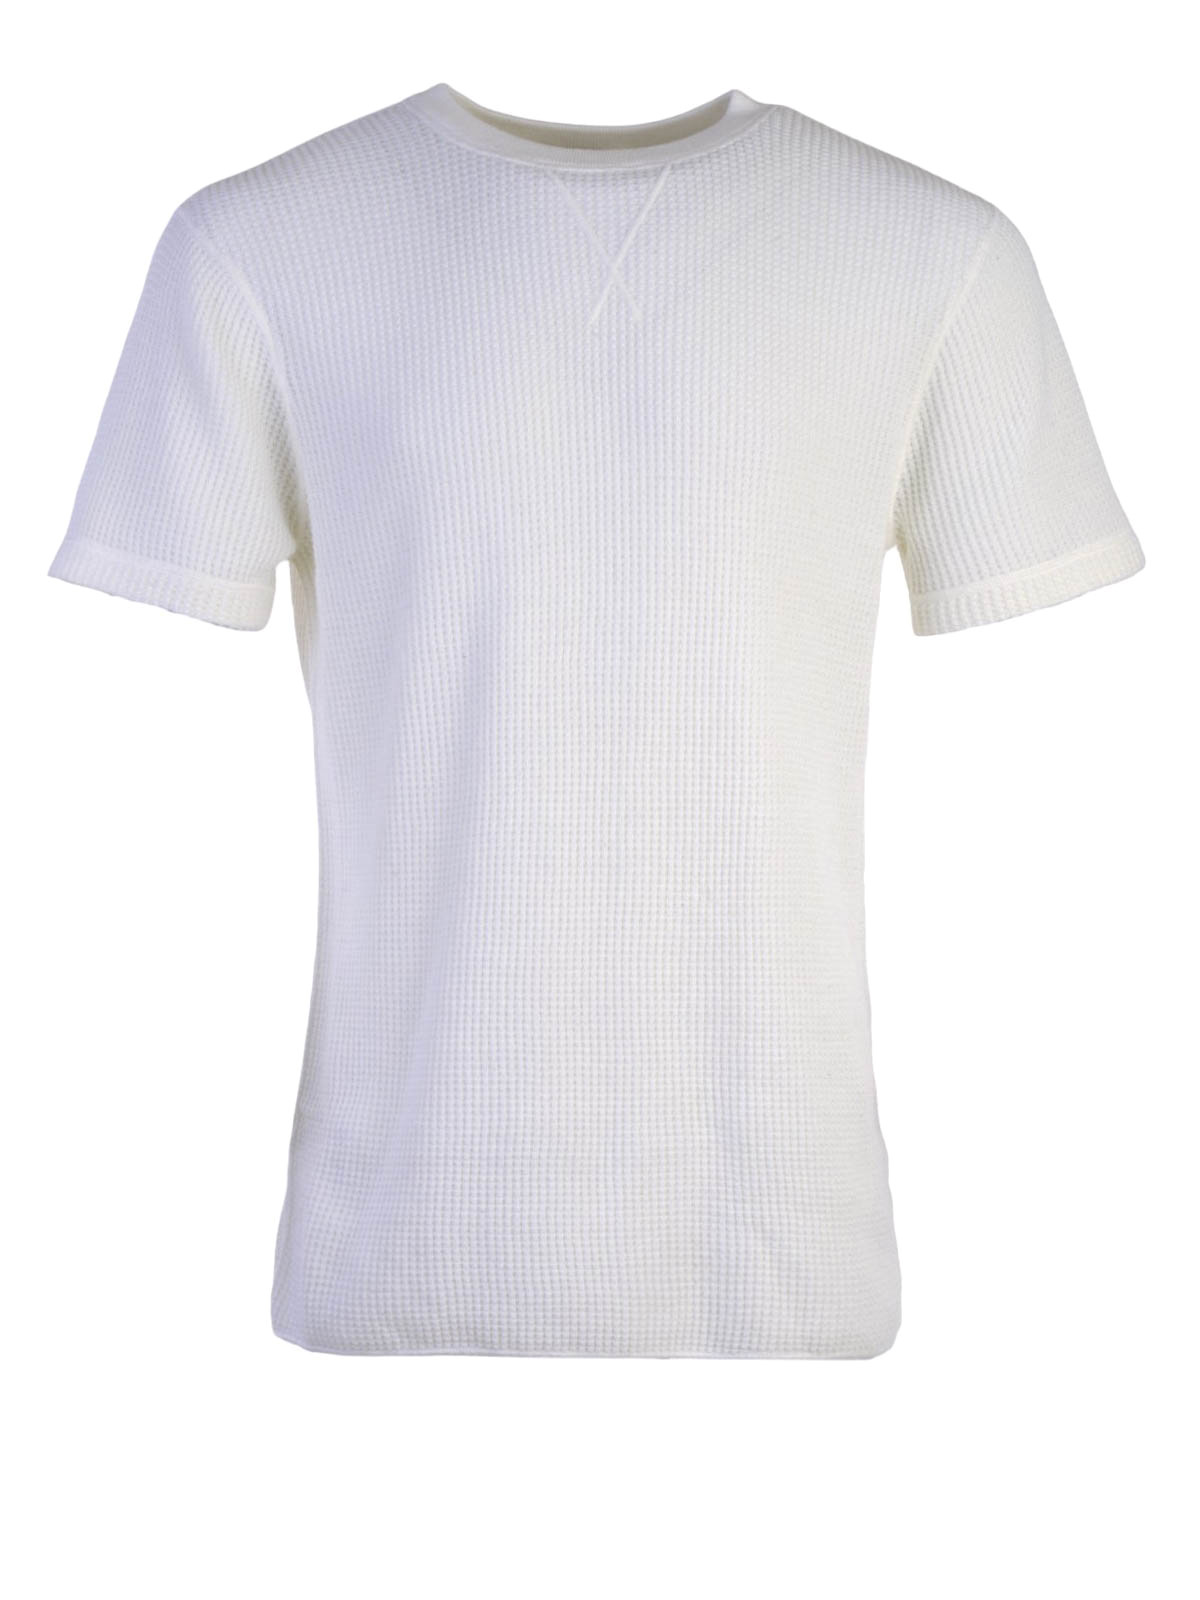 Waffle Knitted Cotton T Shirt By Alexander Wang T Shirts